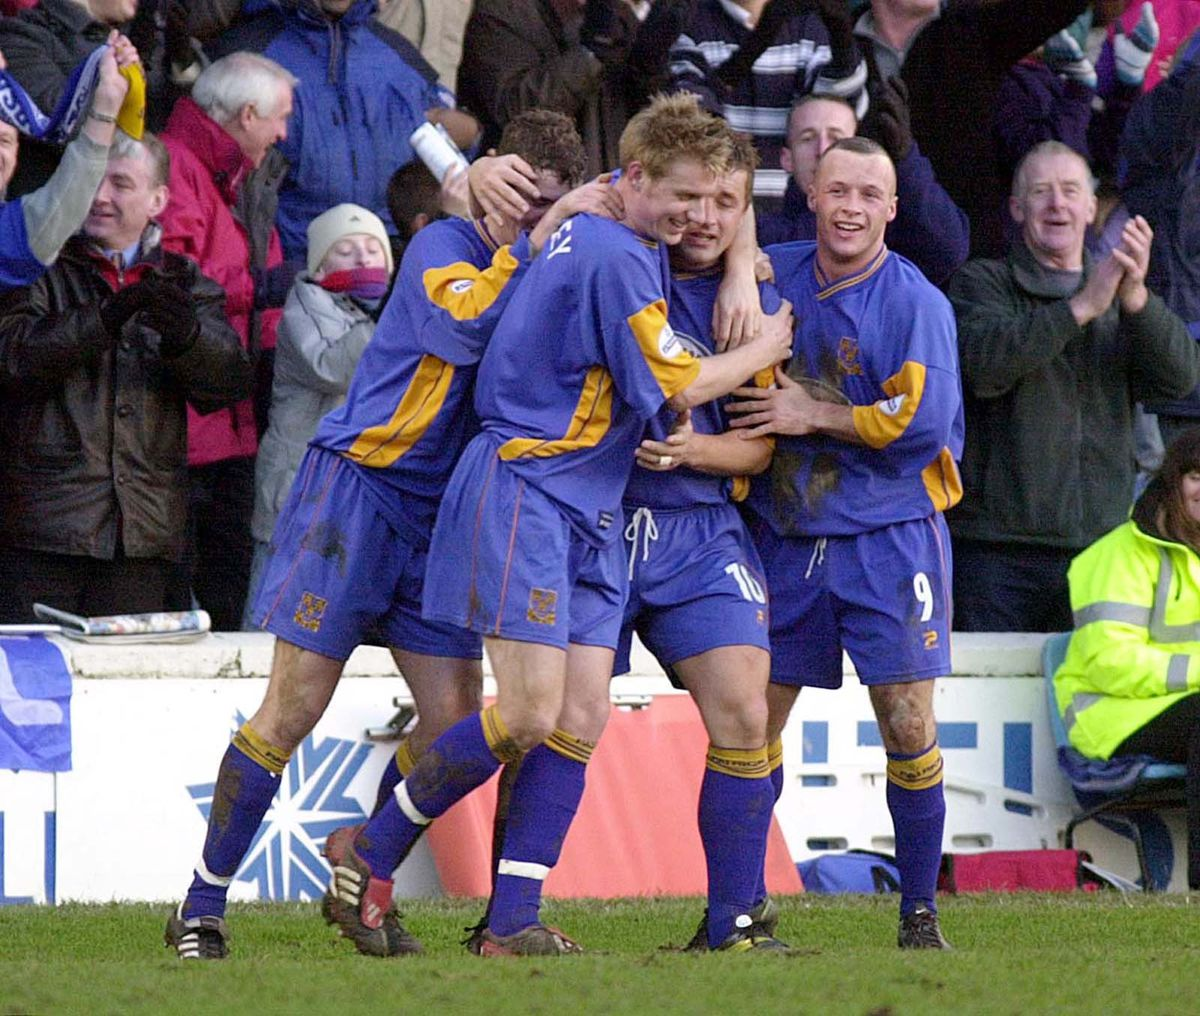 Shrewsbury Town's Nigel Jemson (10) is congratulated by teammates after his free kick goal gives his side the lead against Everton during their FA Cup Third Round match